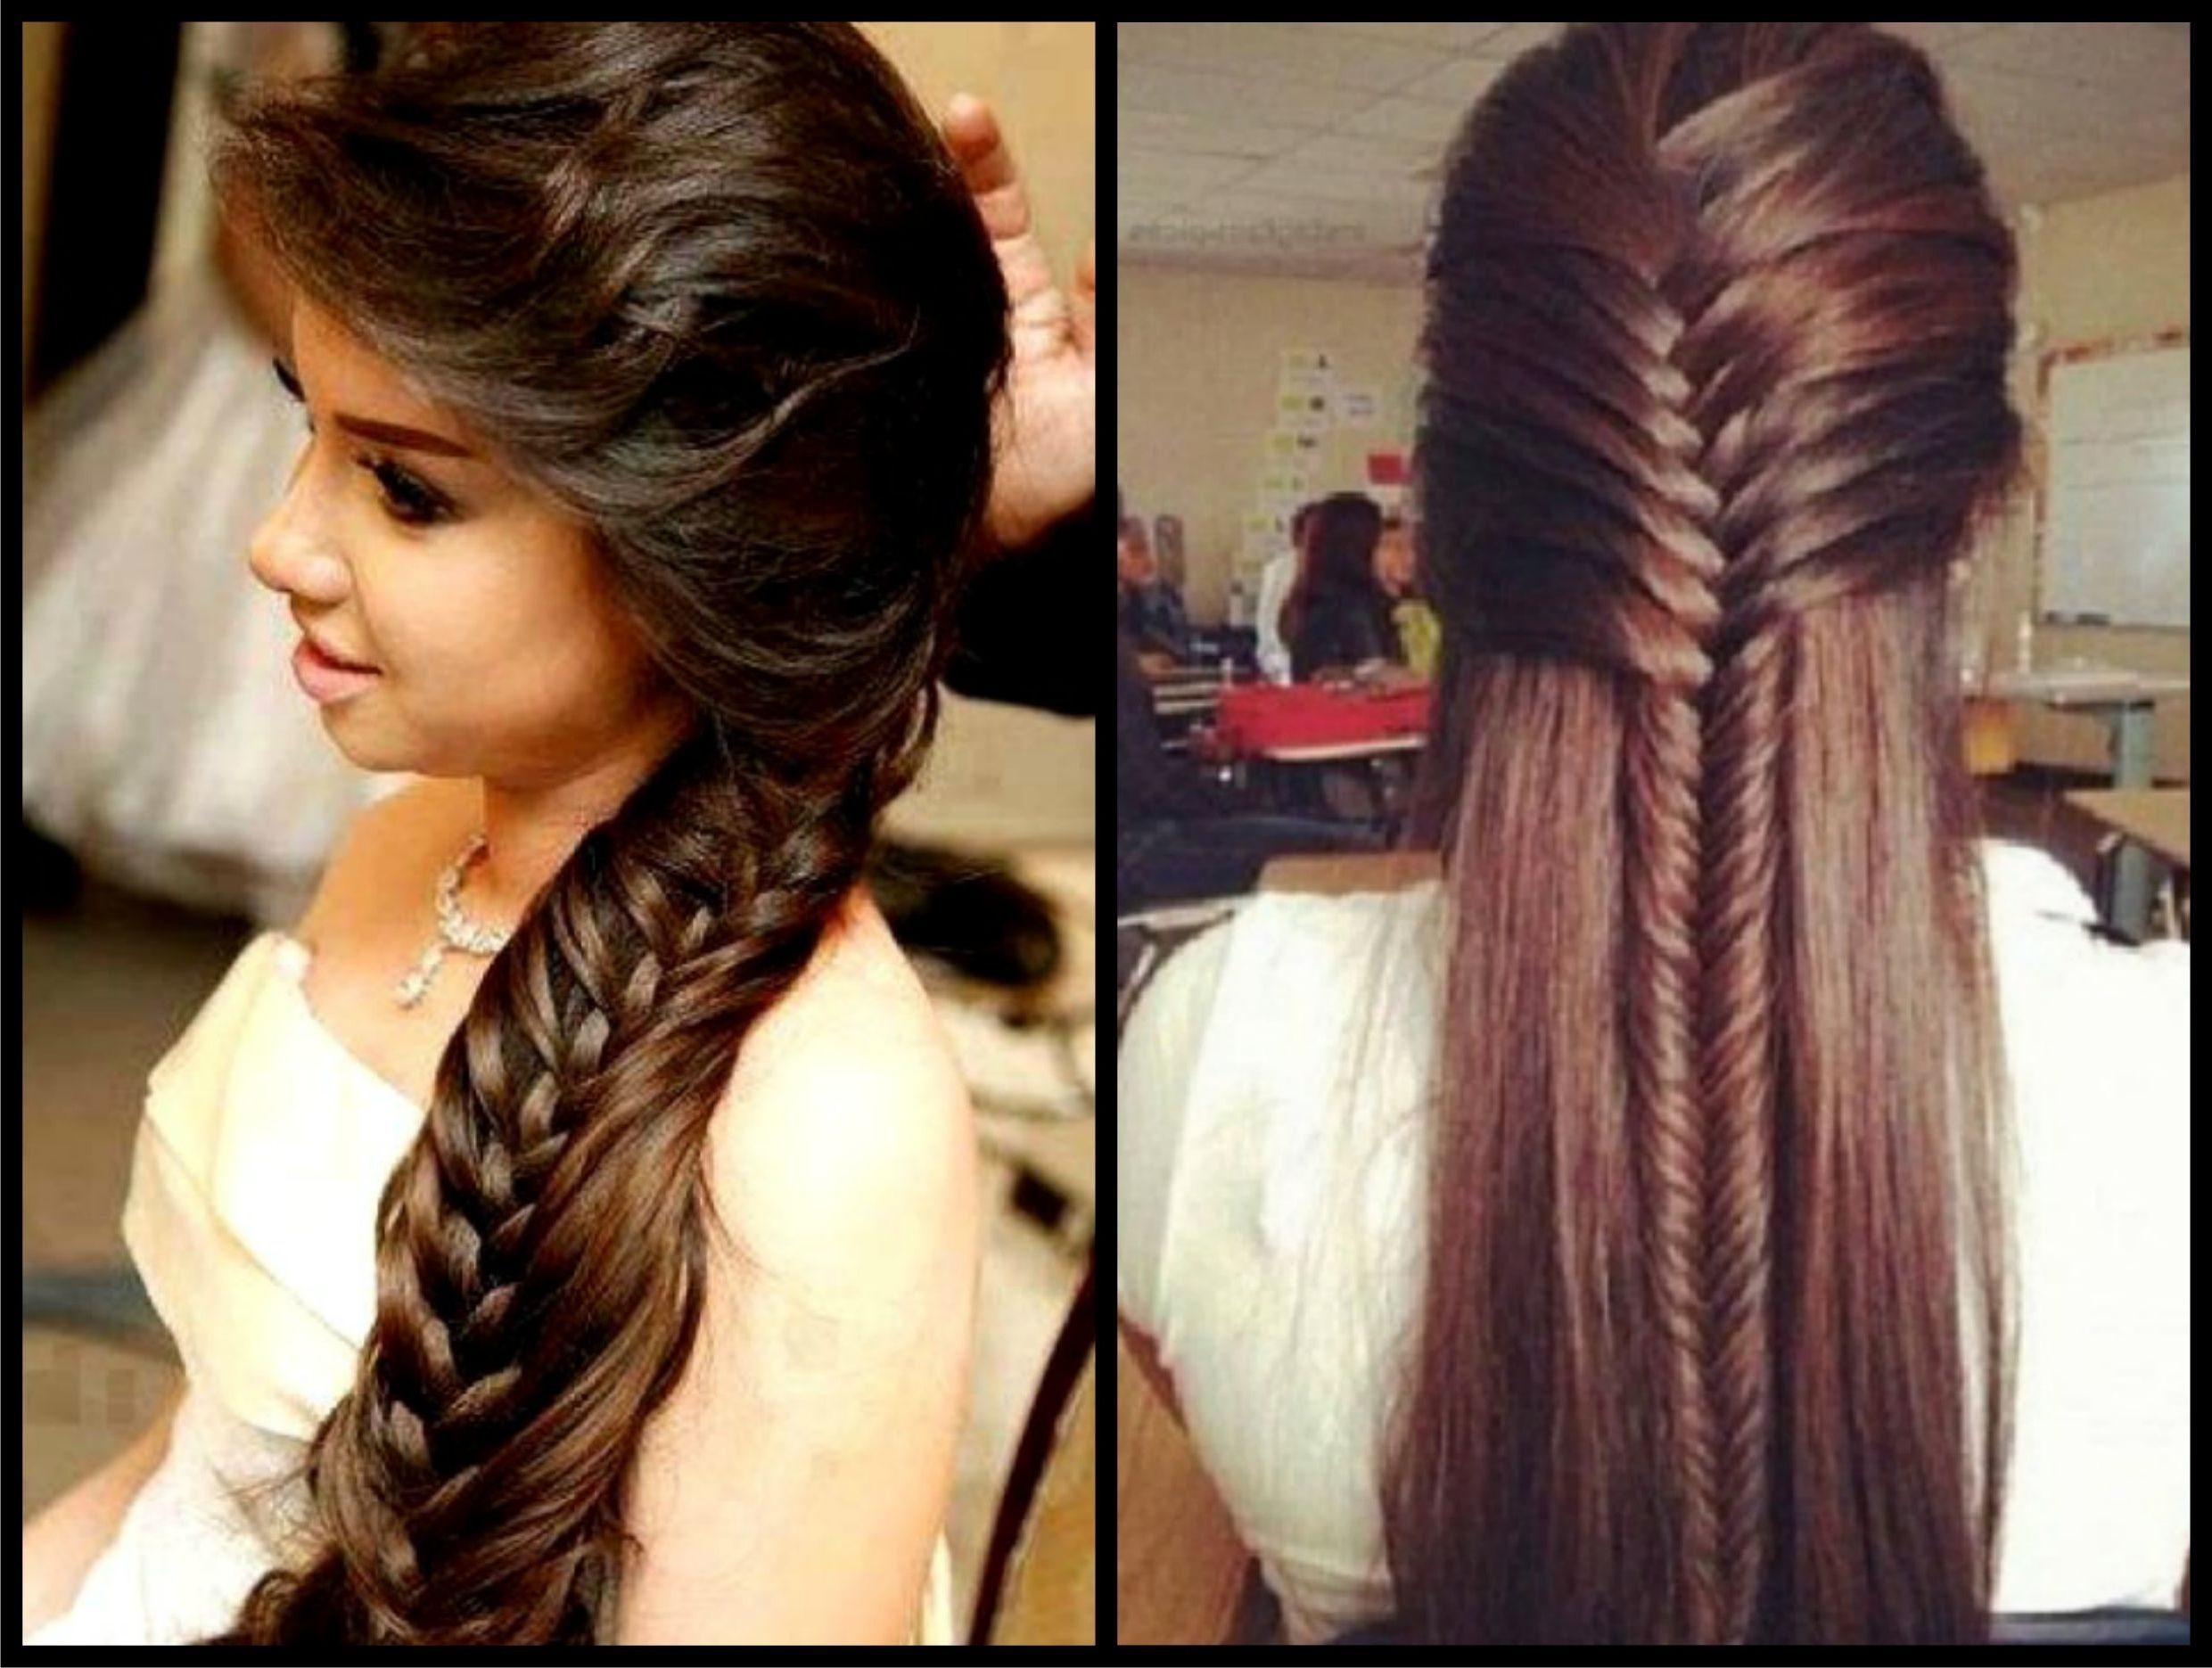 15 Easy Rules Of Simple Hairstyle For Party | Long Hair with regard to Indian Hairstyle For Party Easy To Do